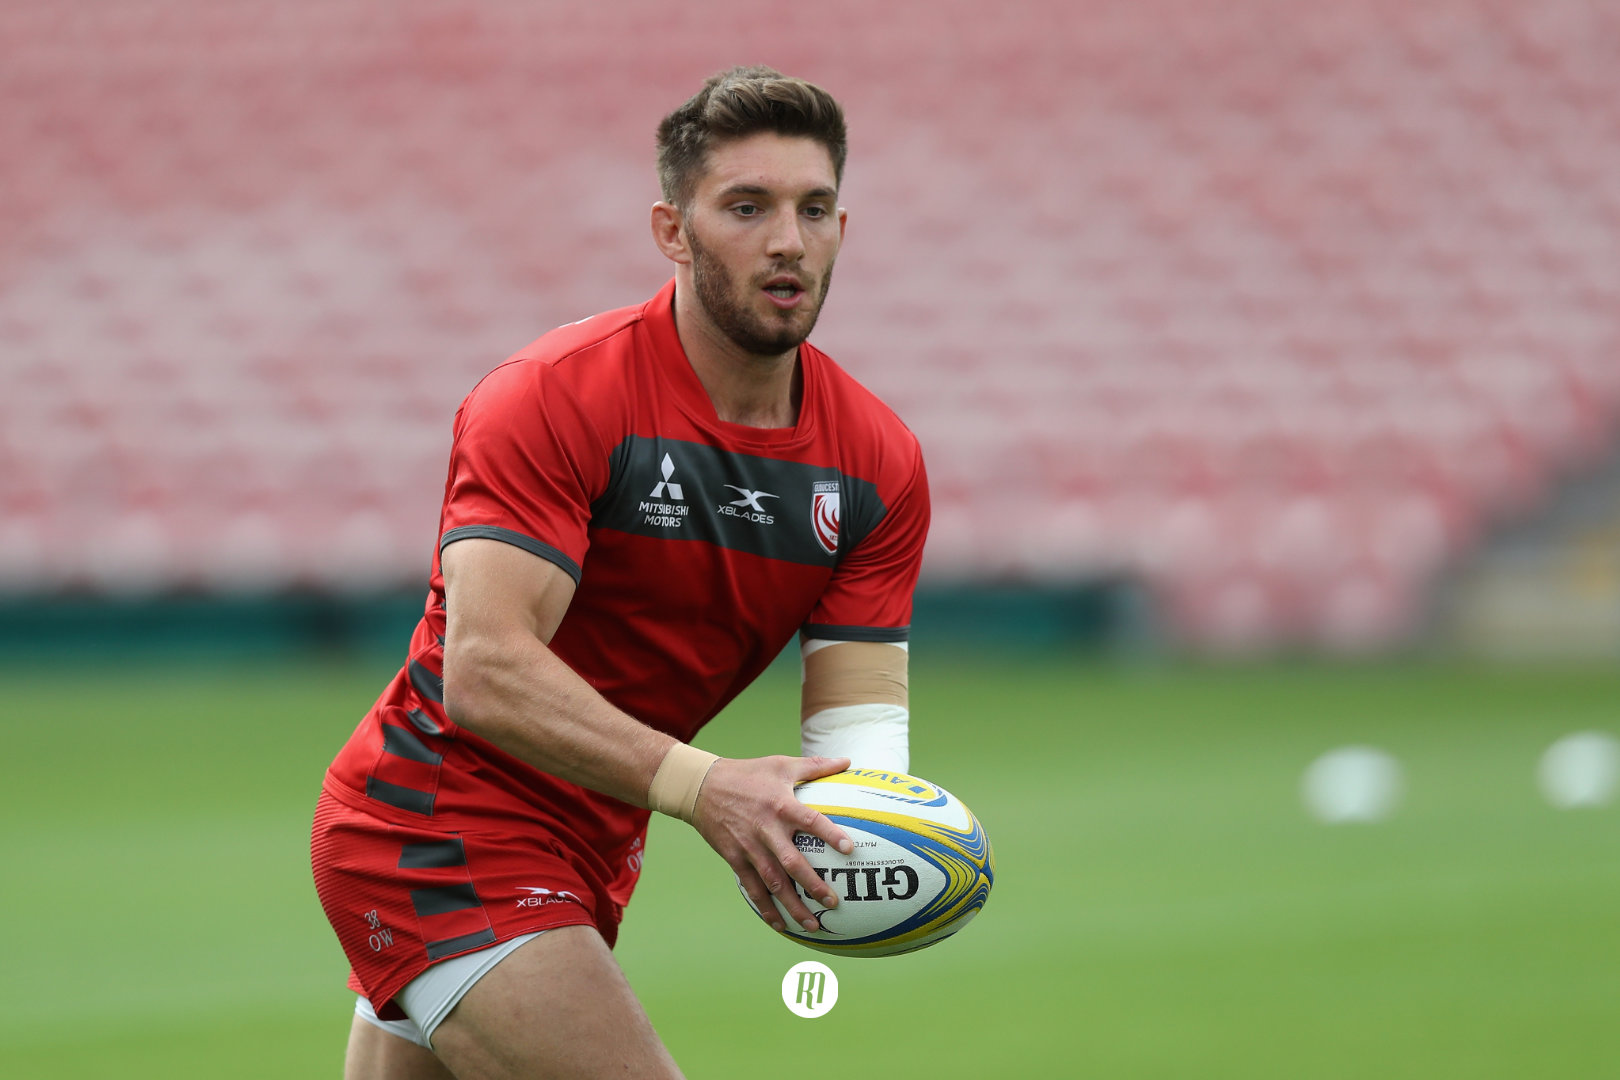 Owen Williams faces a watershed moment in Gloucester career